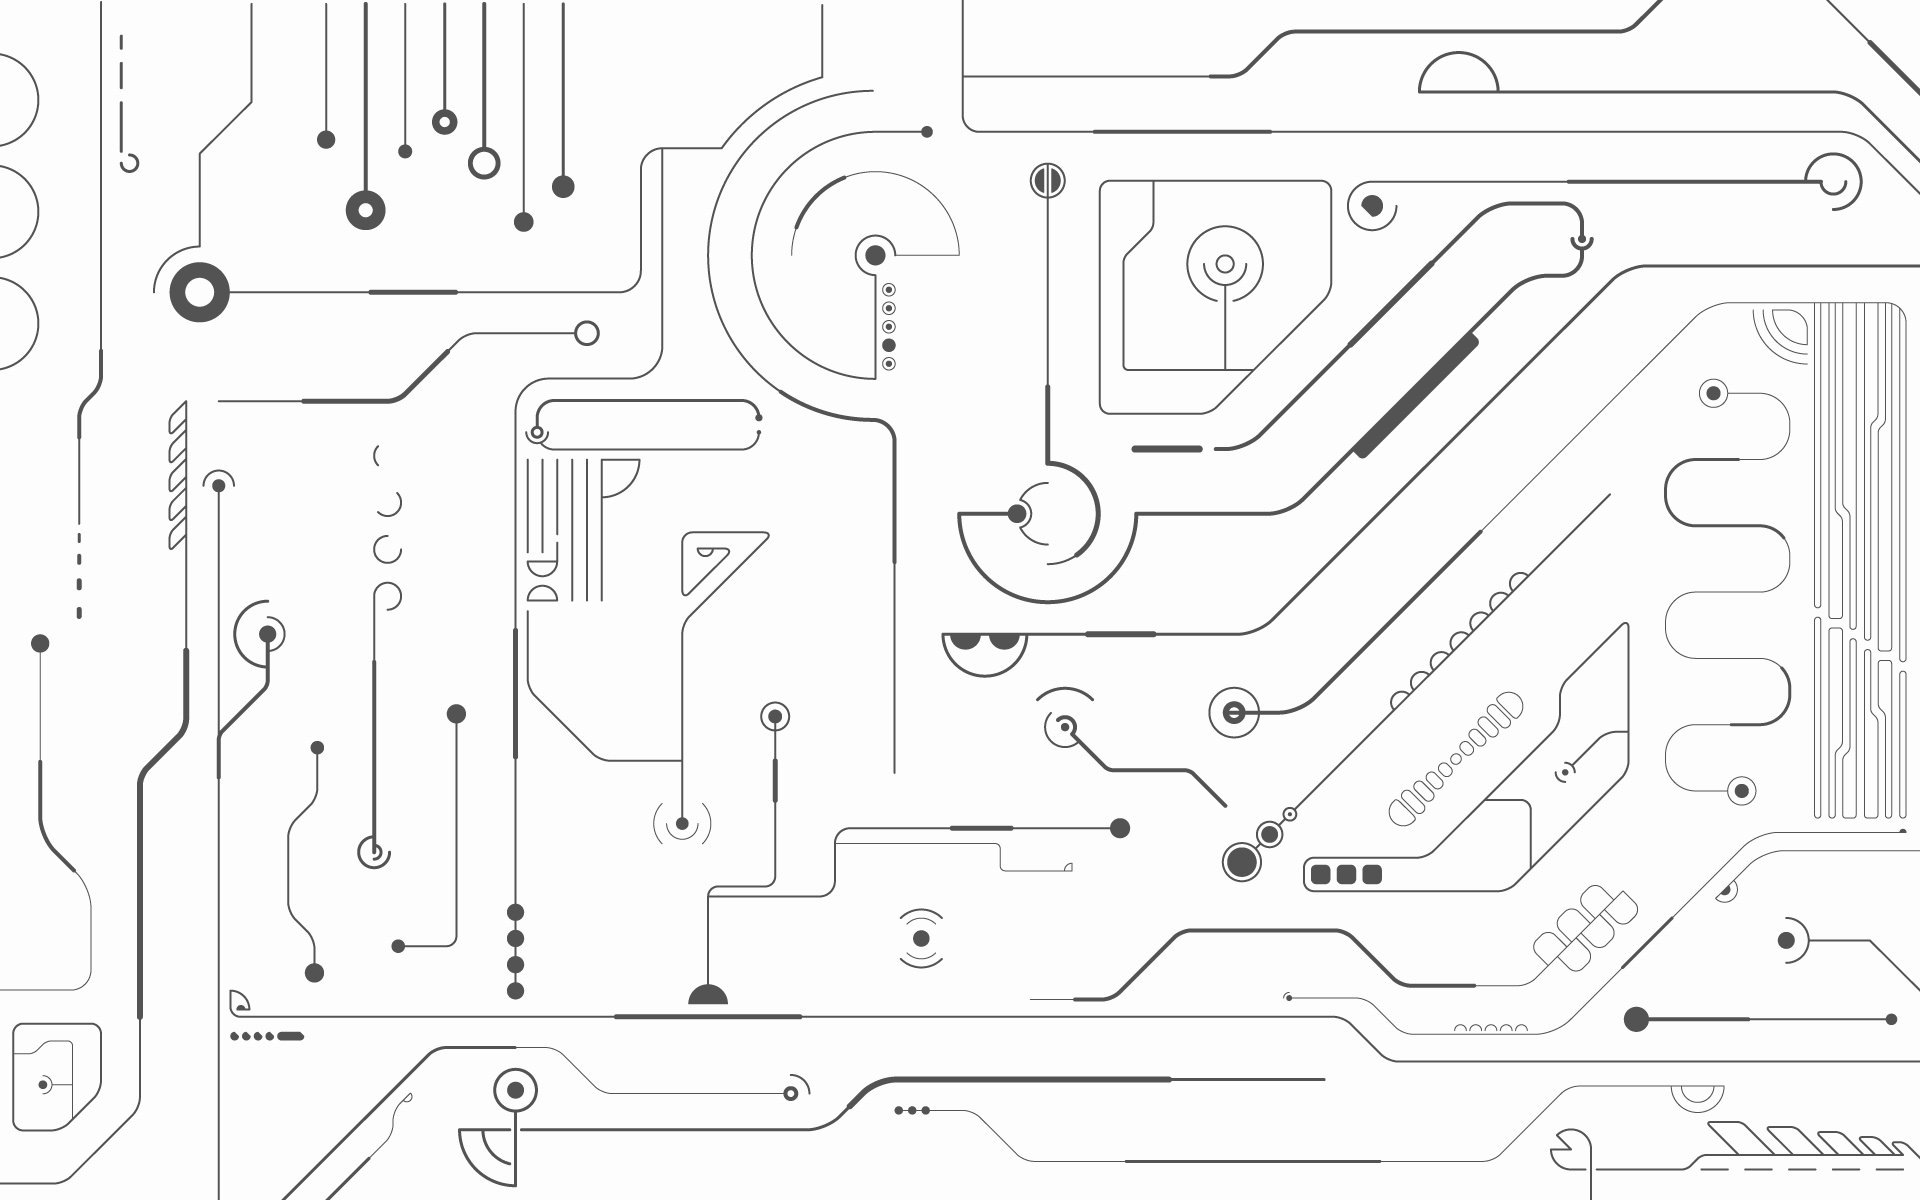 Minimalistic Technology Circuits Wallpaper